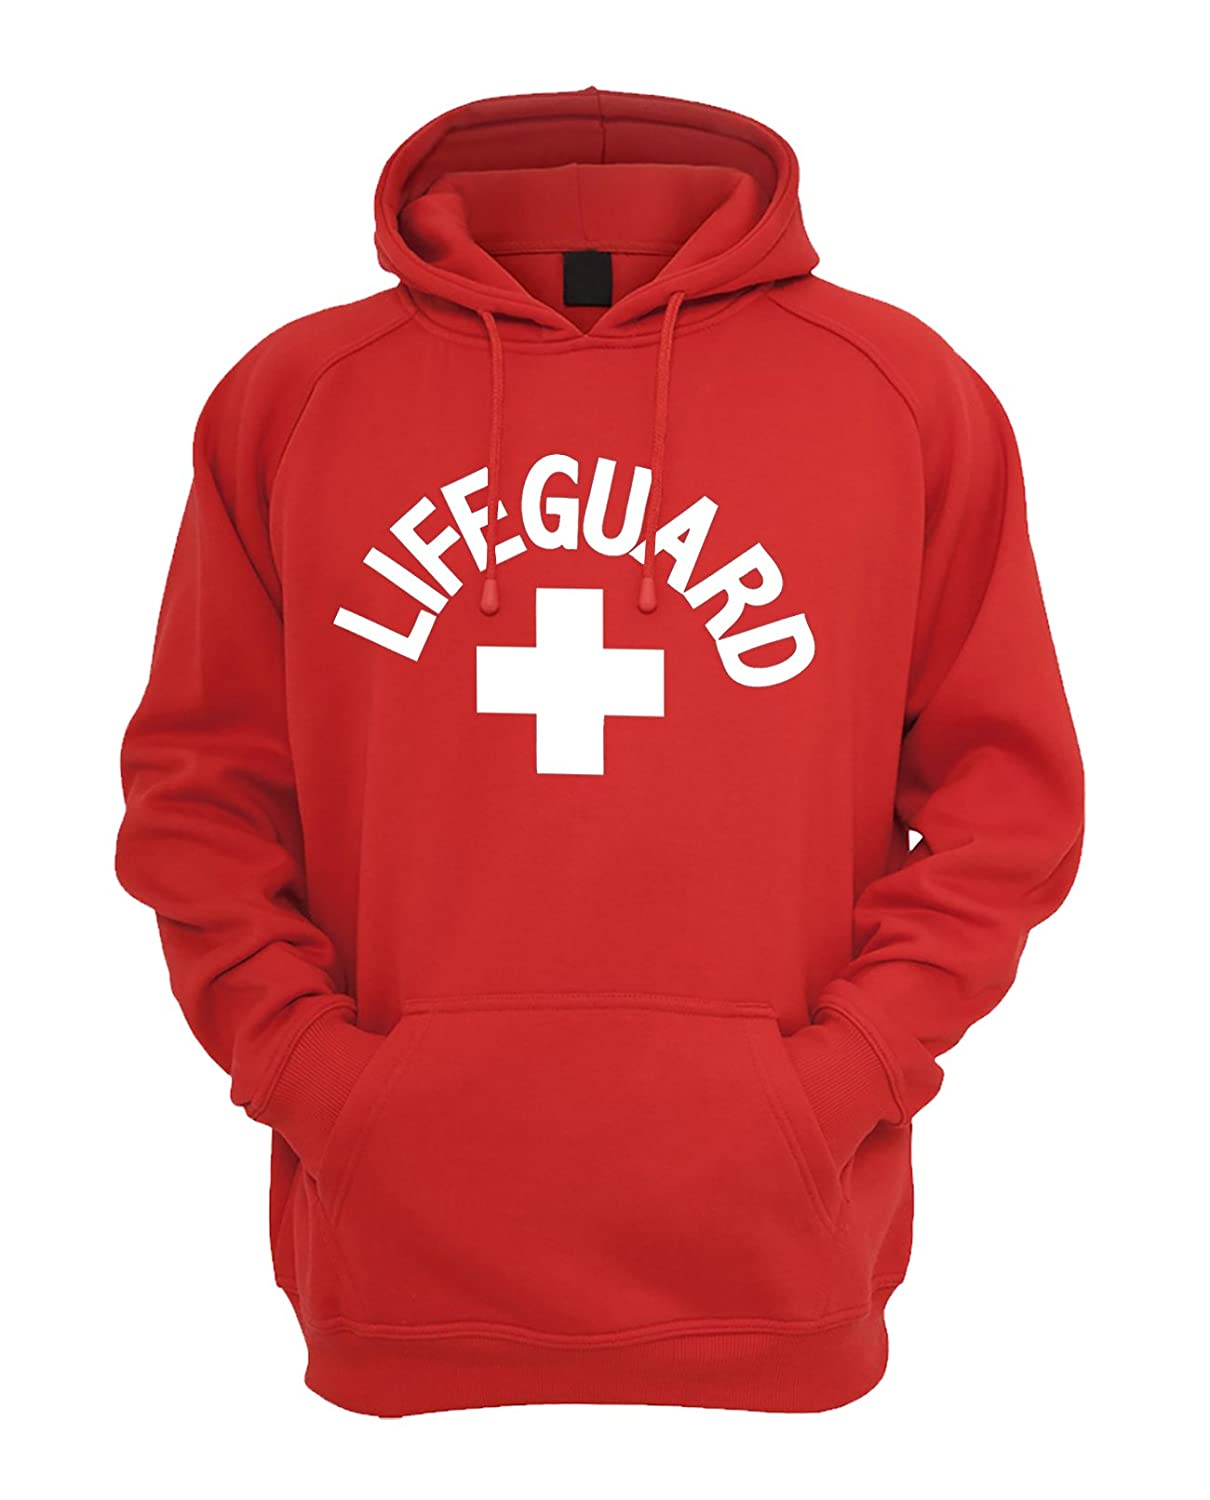 Qualifornia White Lifeguard Design Unisex Hoodie